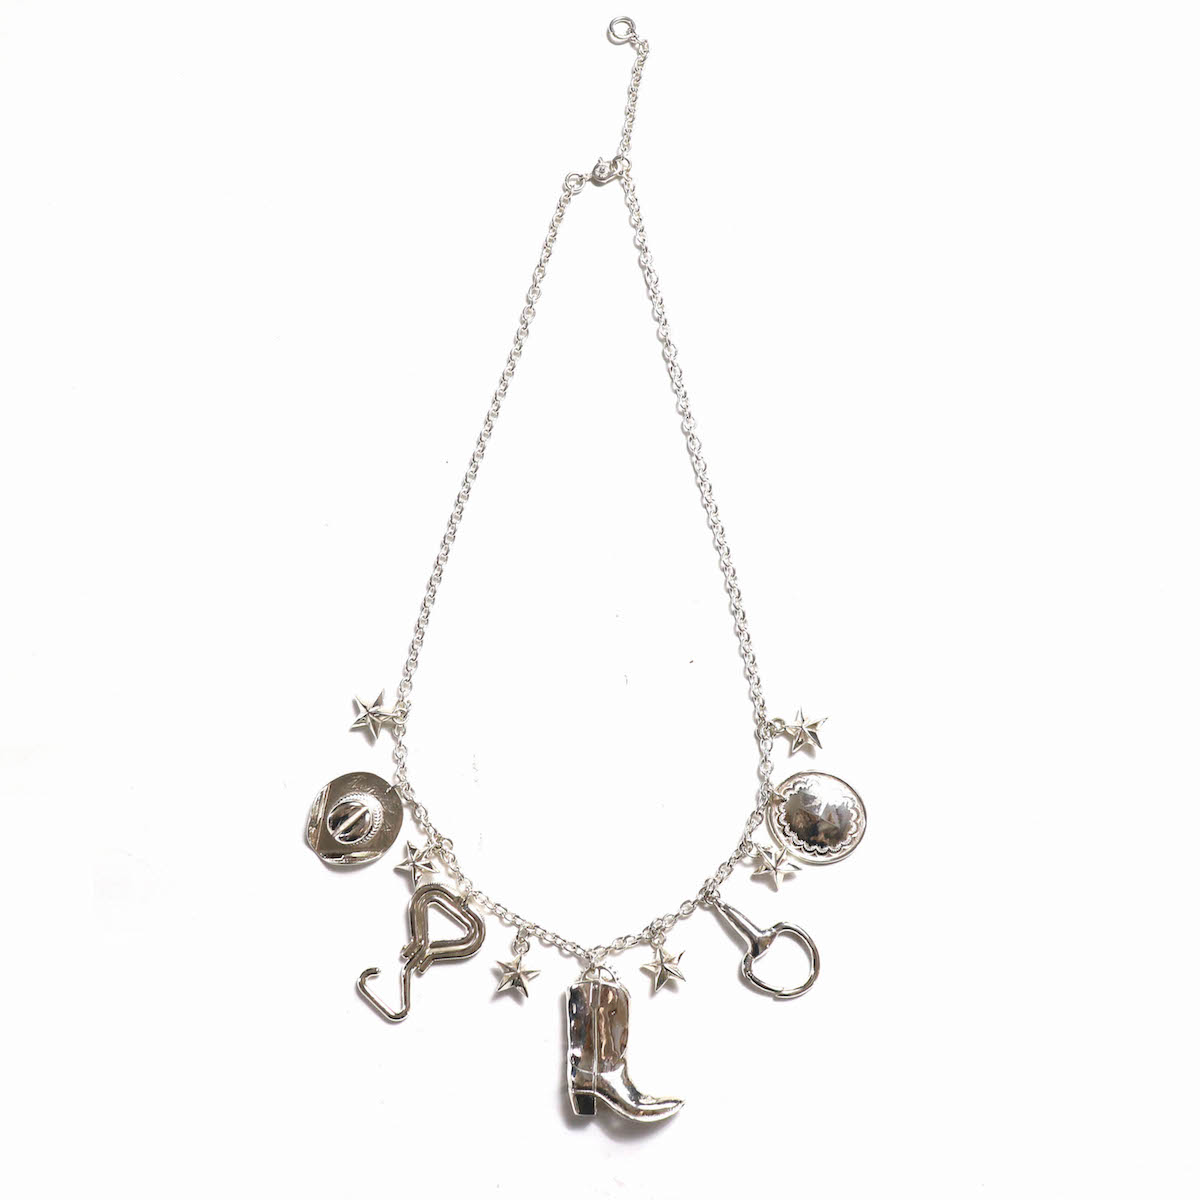 END / western necklace